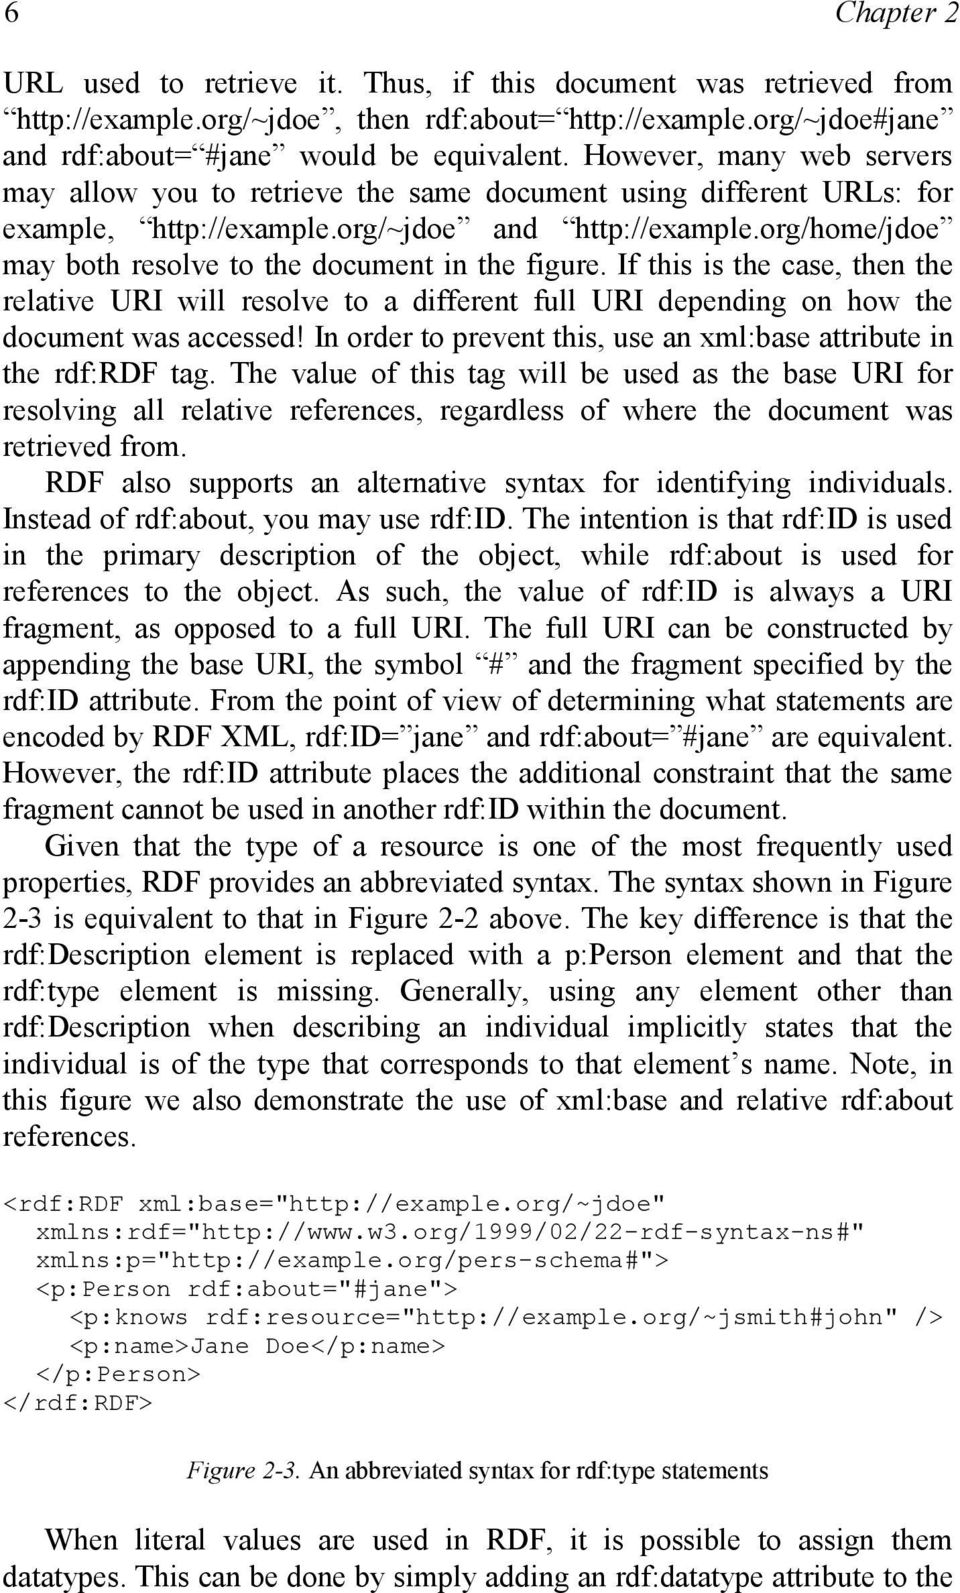 org/home/jdoe may both resolve to the document in the figure. If this is the case, then the relative URI will resolve to a different full URI depending on how the document was accessed!